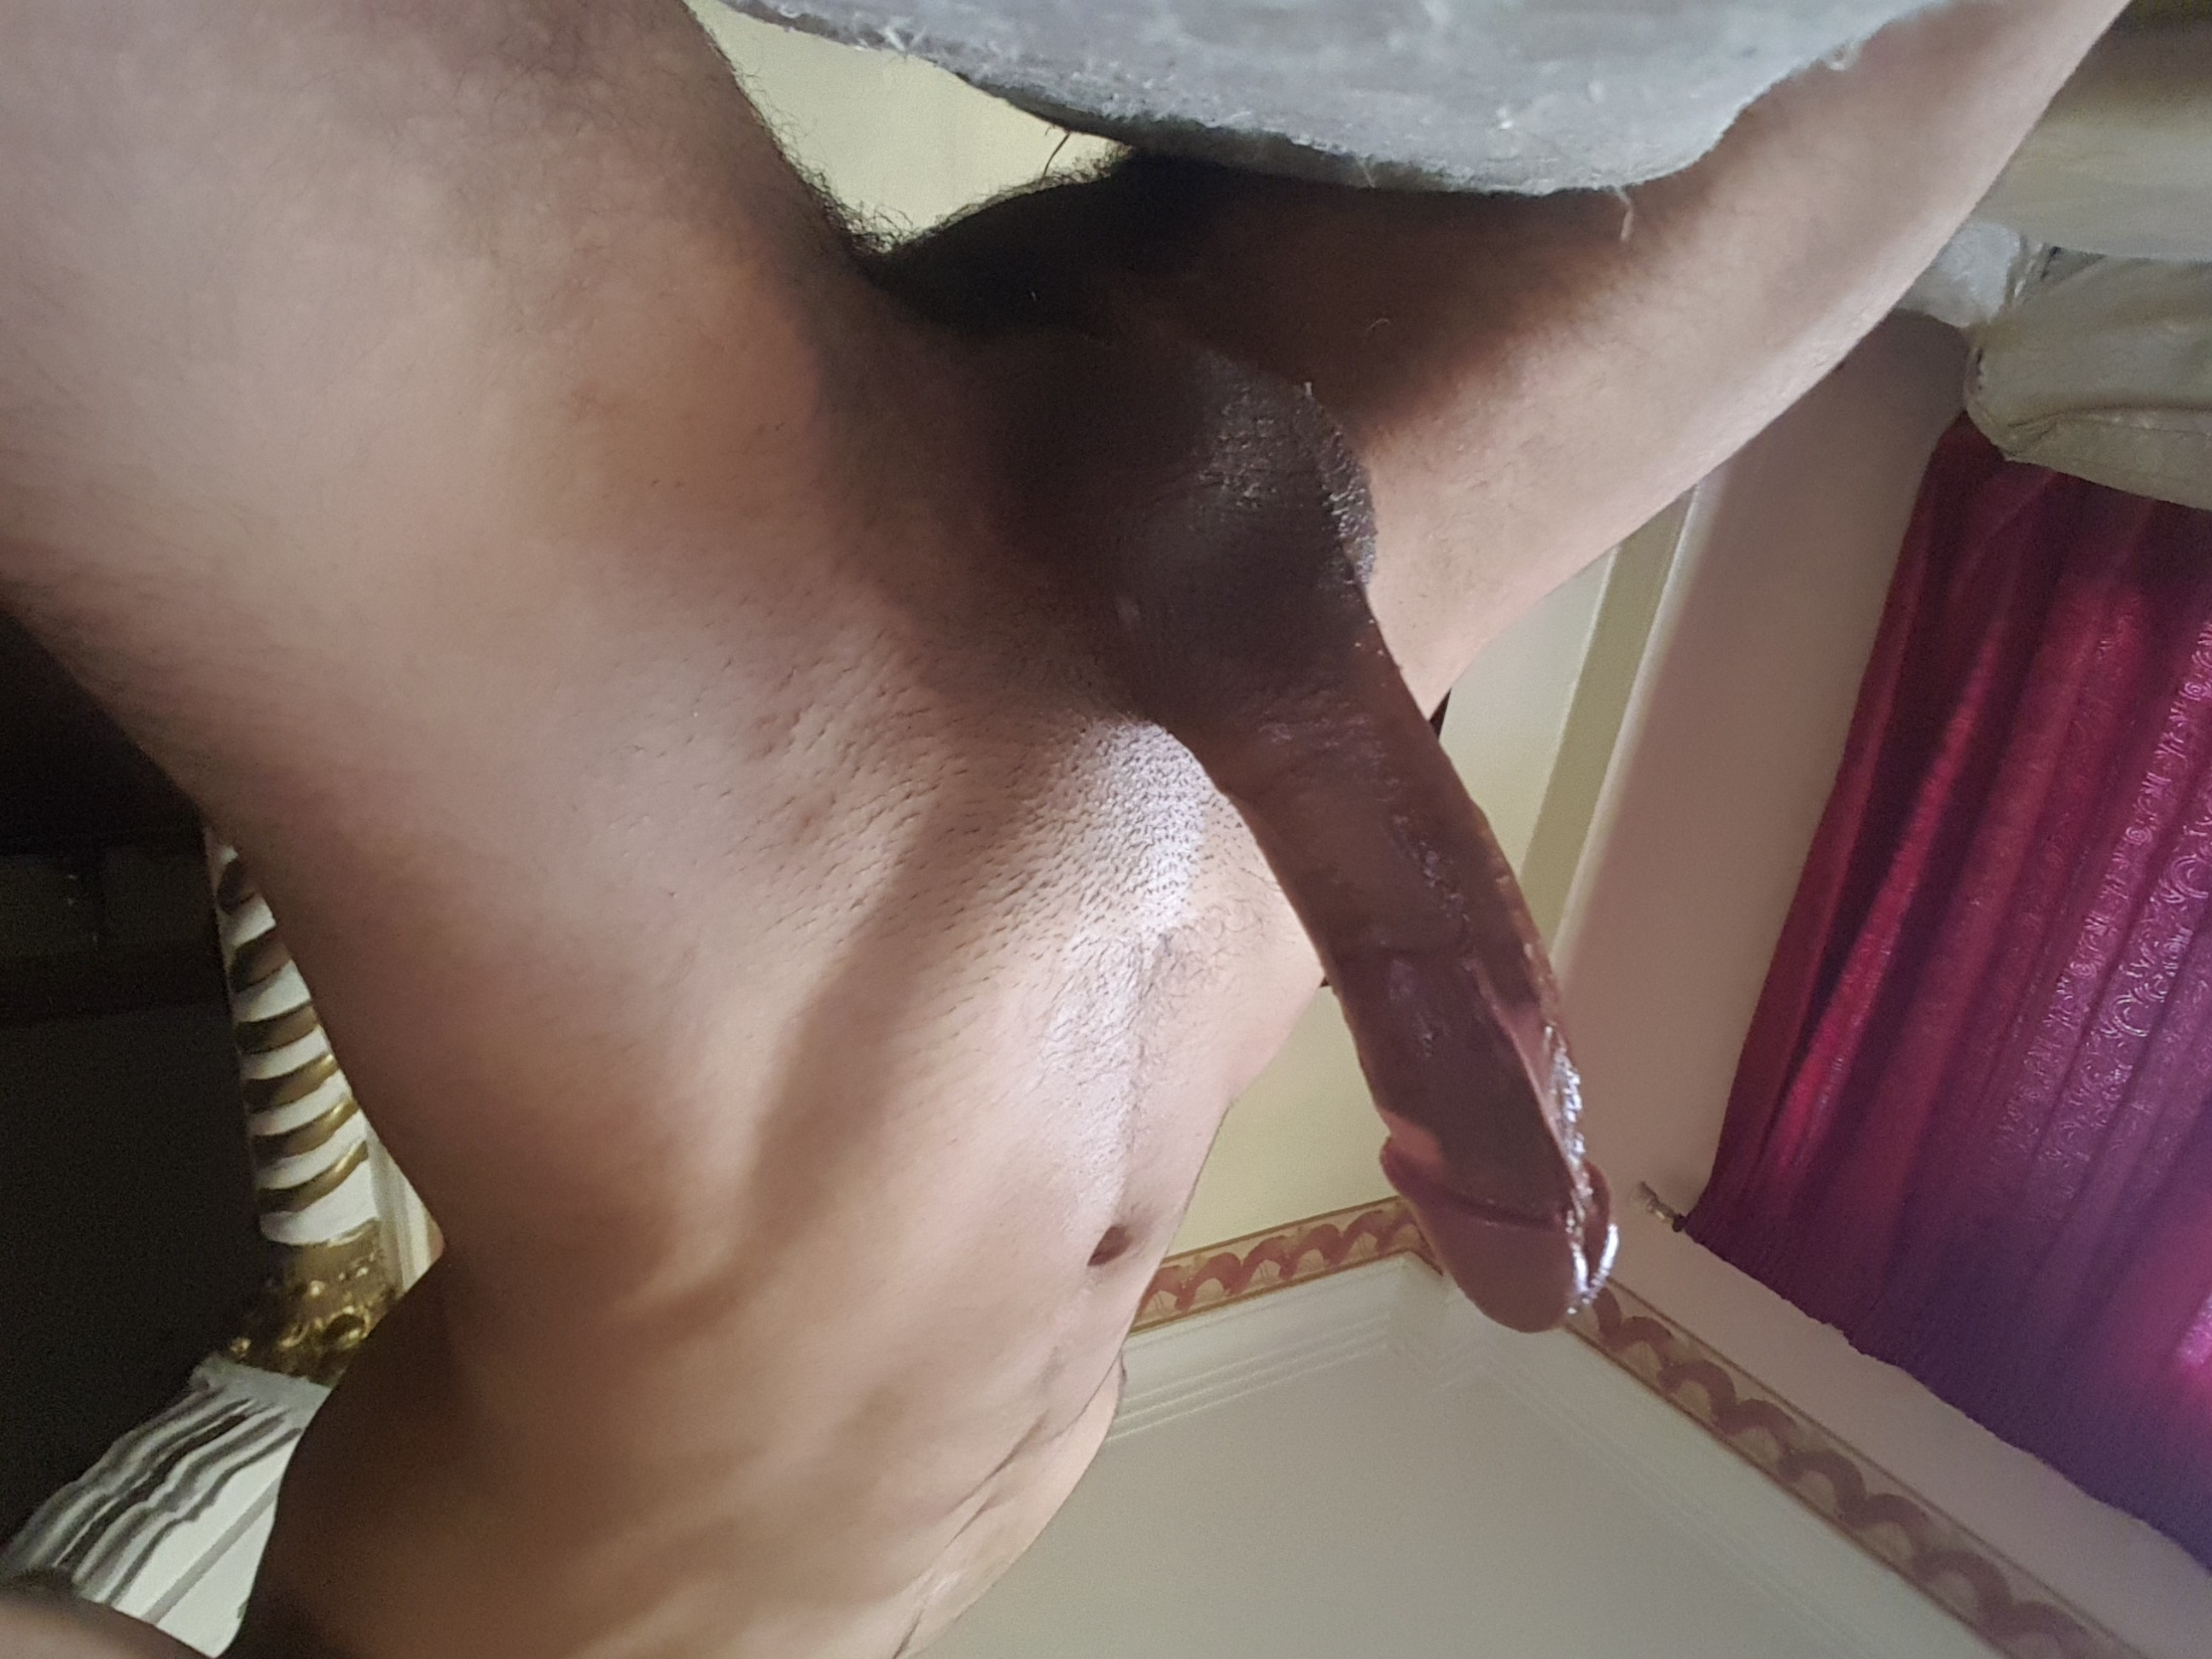 Wanna try it? real nudity dick flash